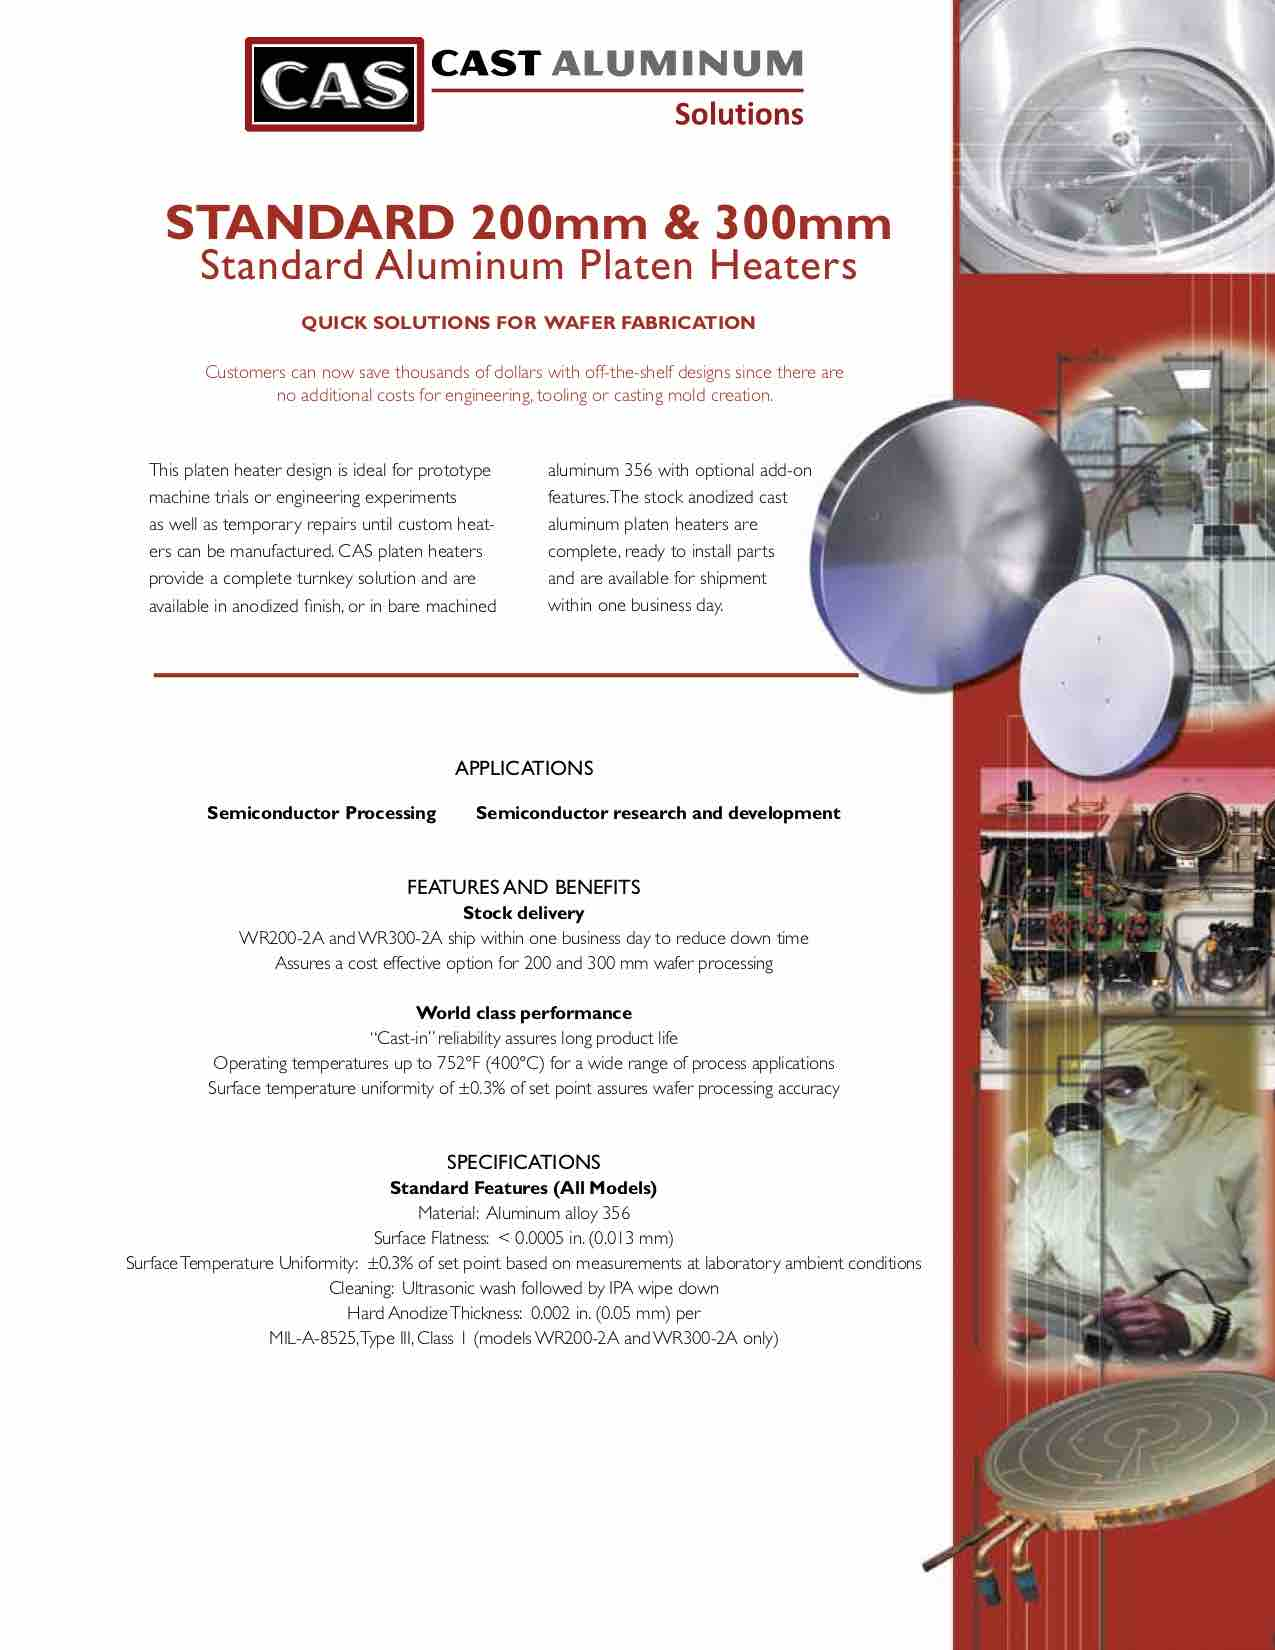 200 And 300 Mm Standard Platens Cast Aluminum Solutions (dragged)